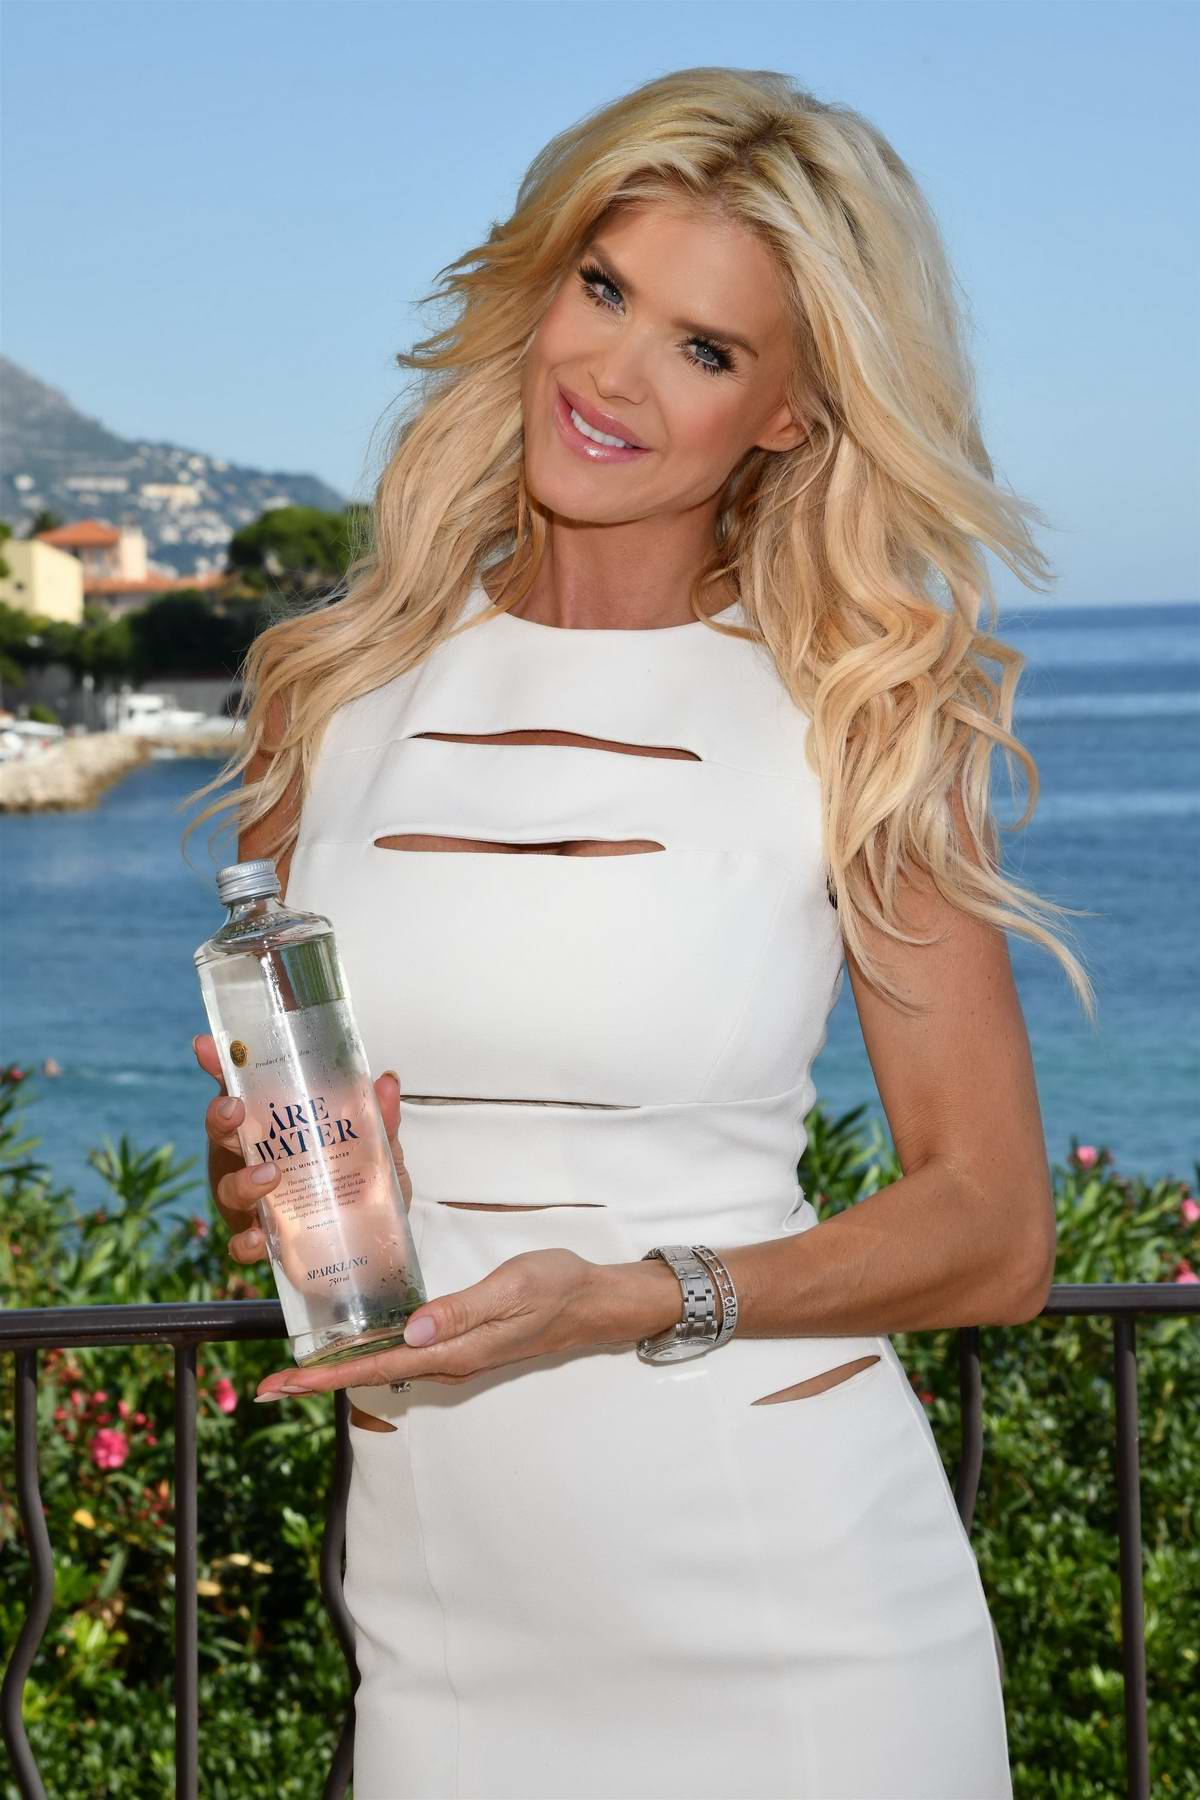 Victoria Silvstedt is the new face of Swedish water 'Are Water' in Saint-Jean-Cap-Ferrat, France